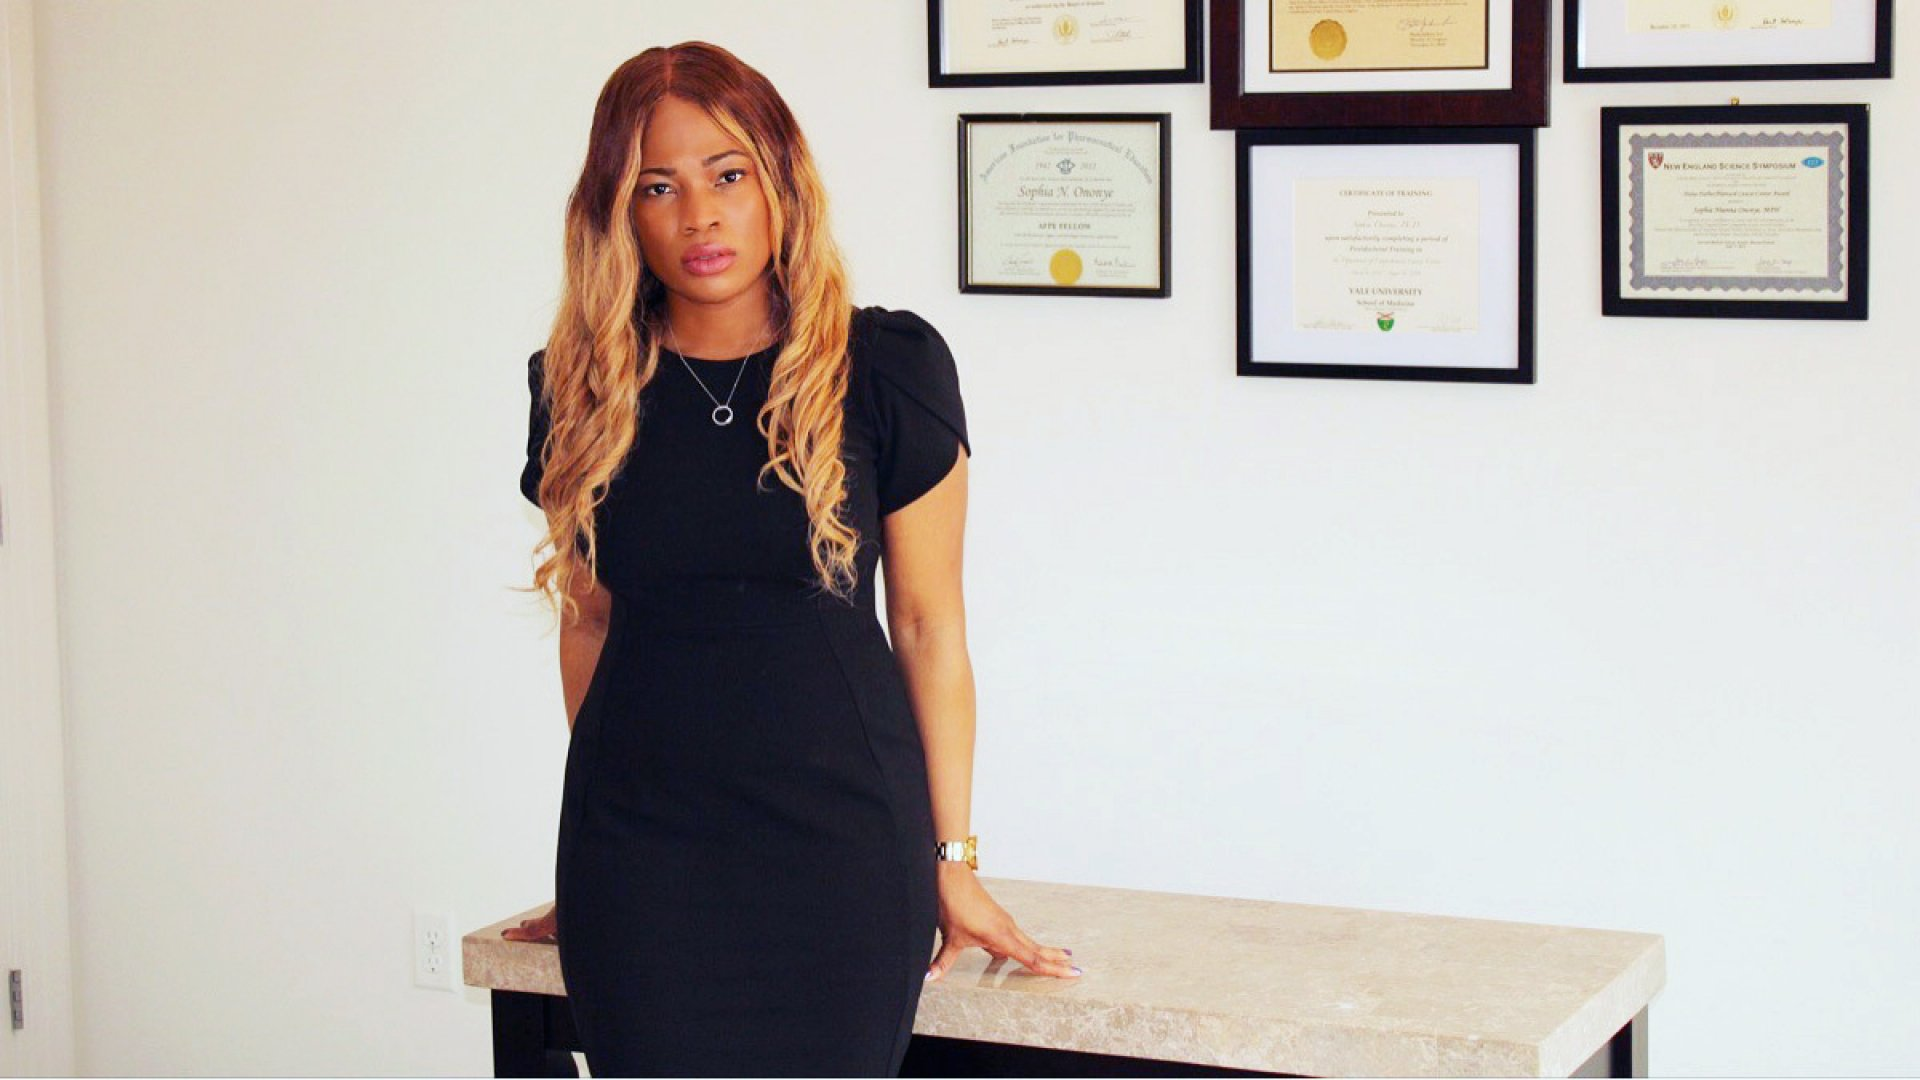 Sophia Ononye, after years in the lab, started her own scientific consulting firm in New York City.